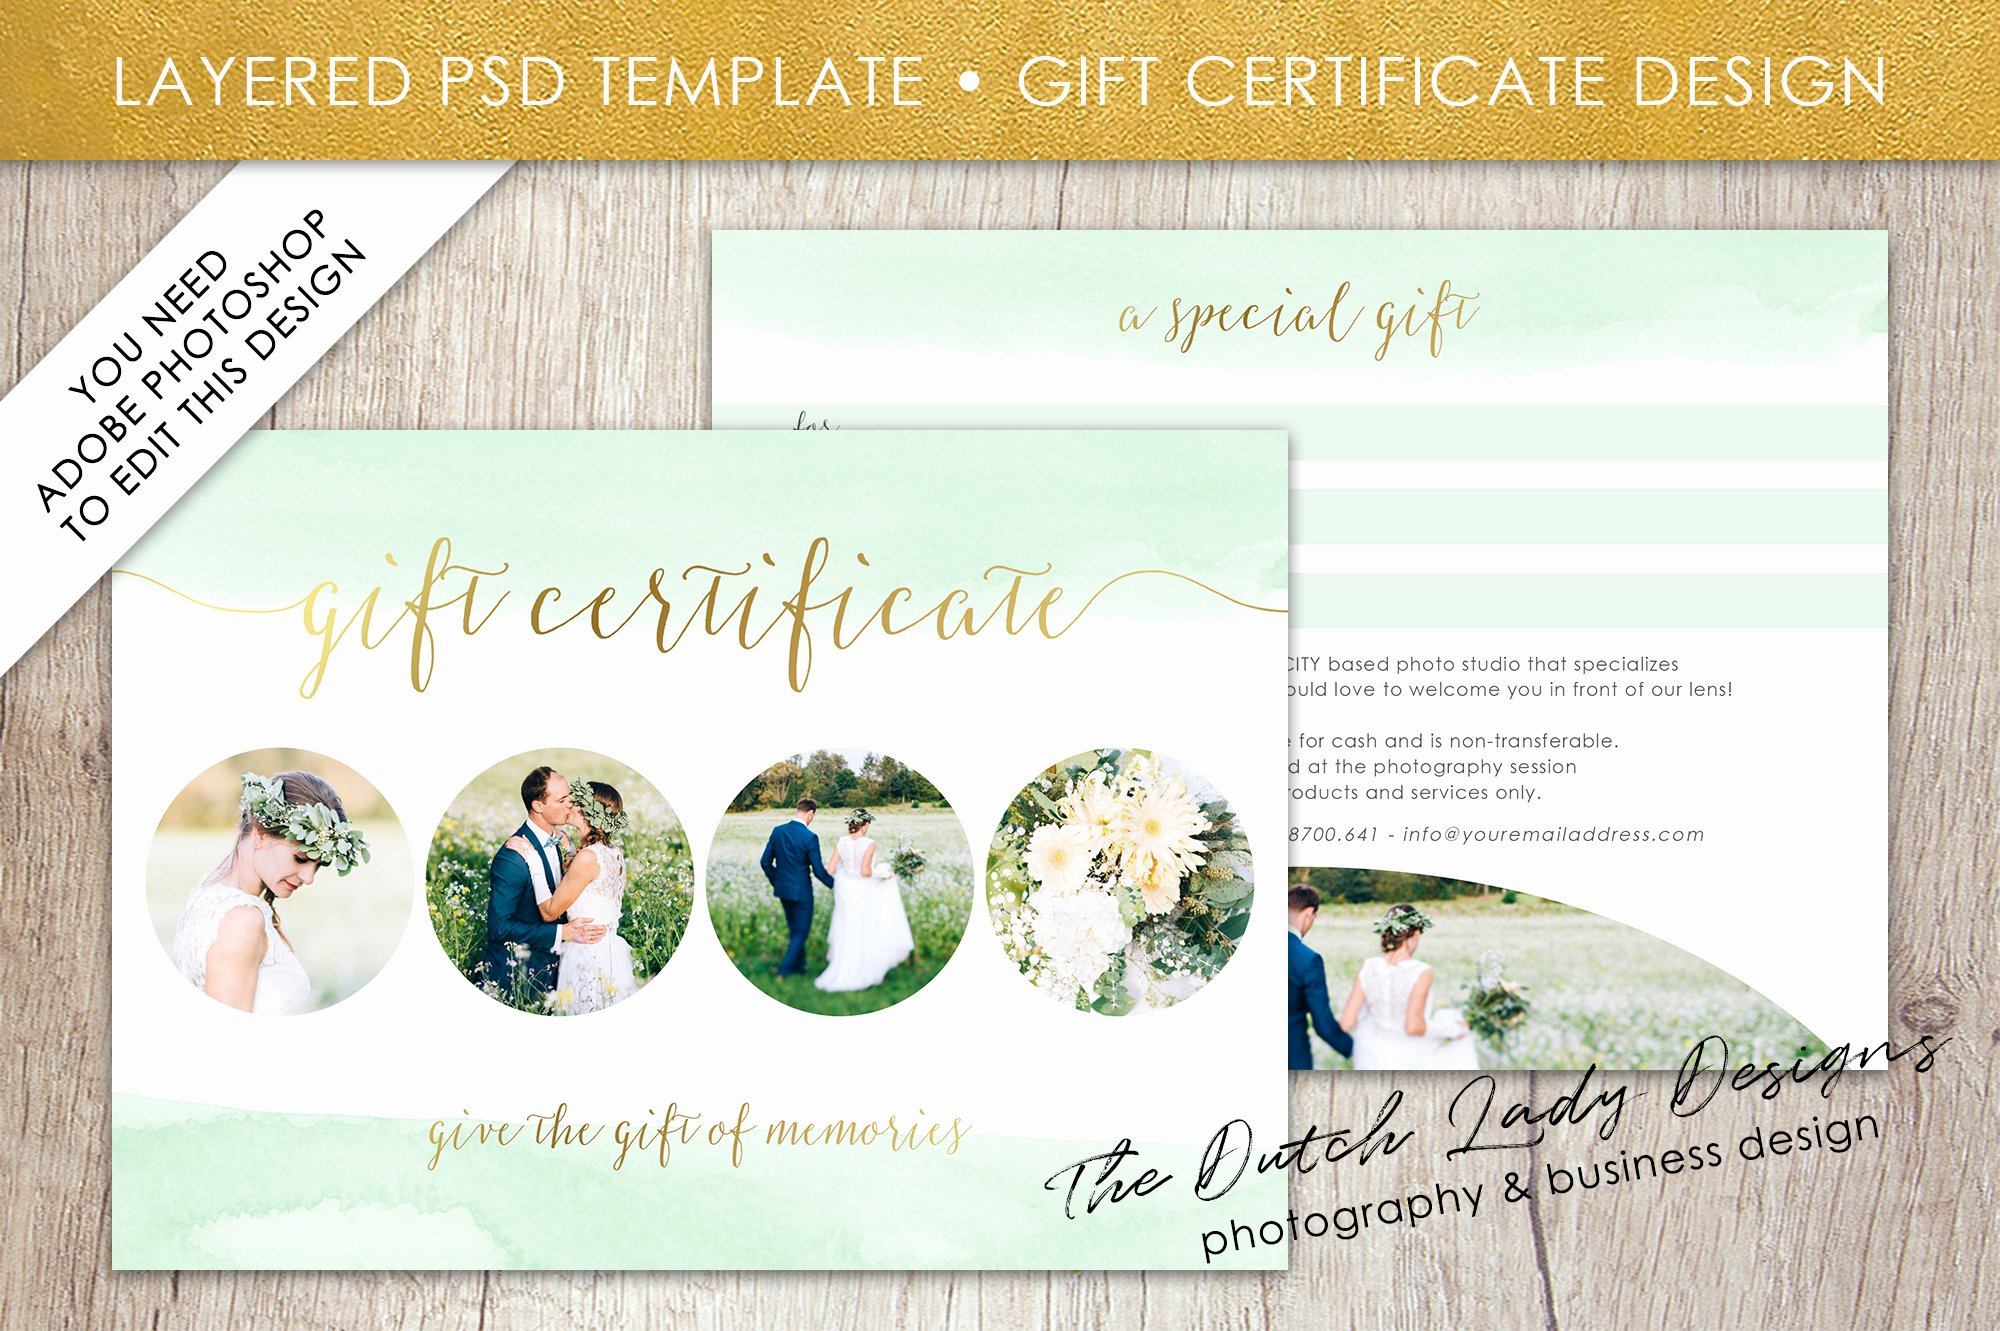 Gift Card Template Psd Beautiful Psd Gift Certificate Card Template Graphic by